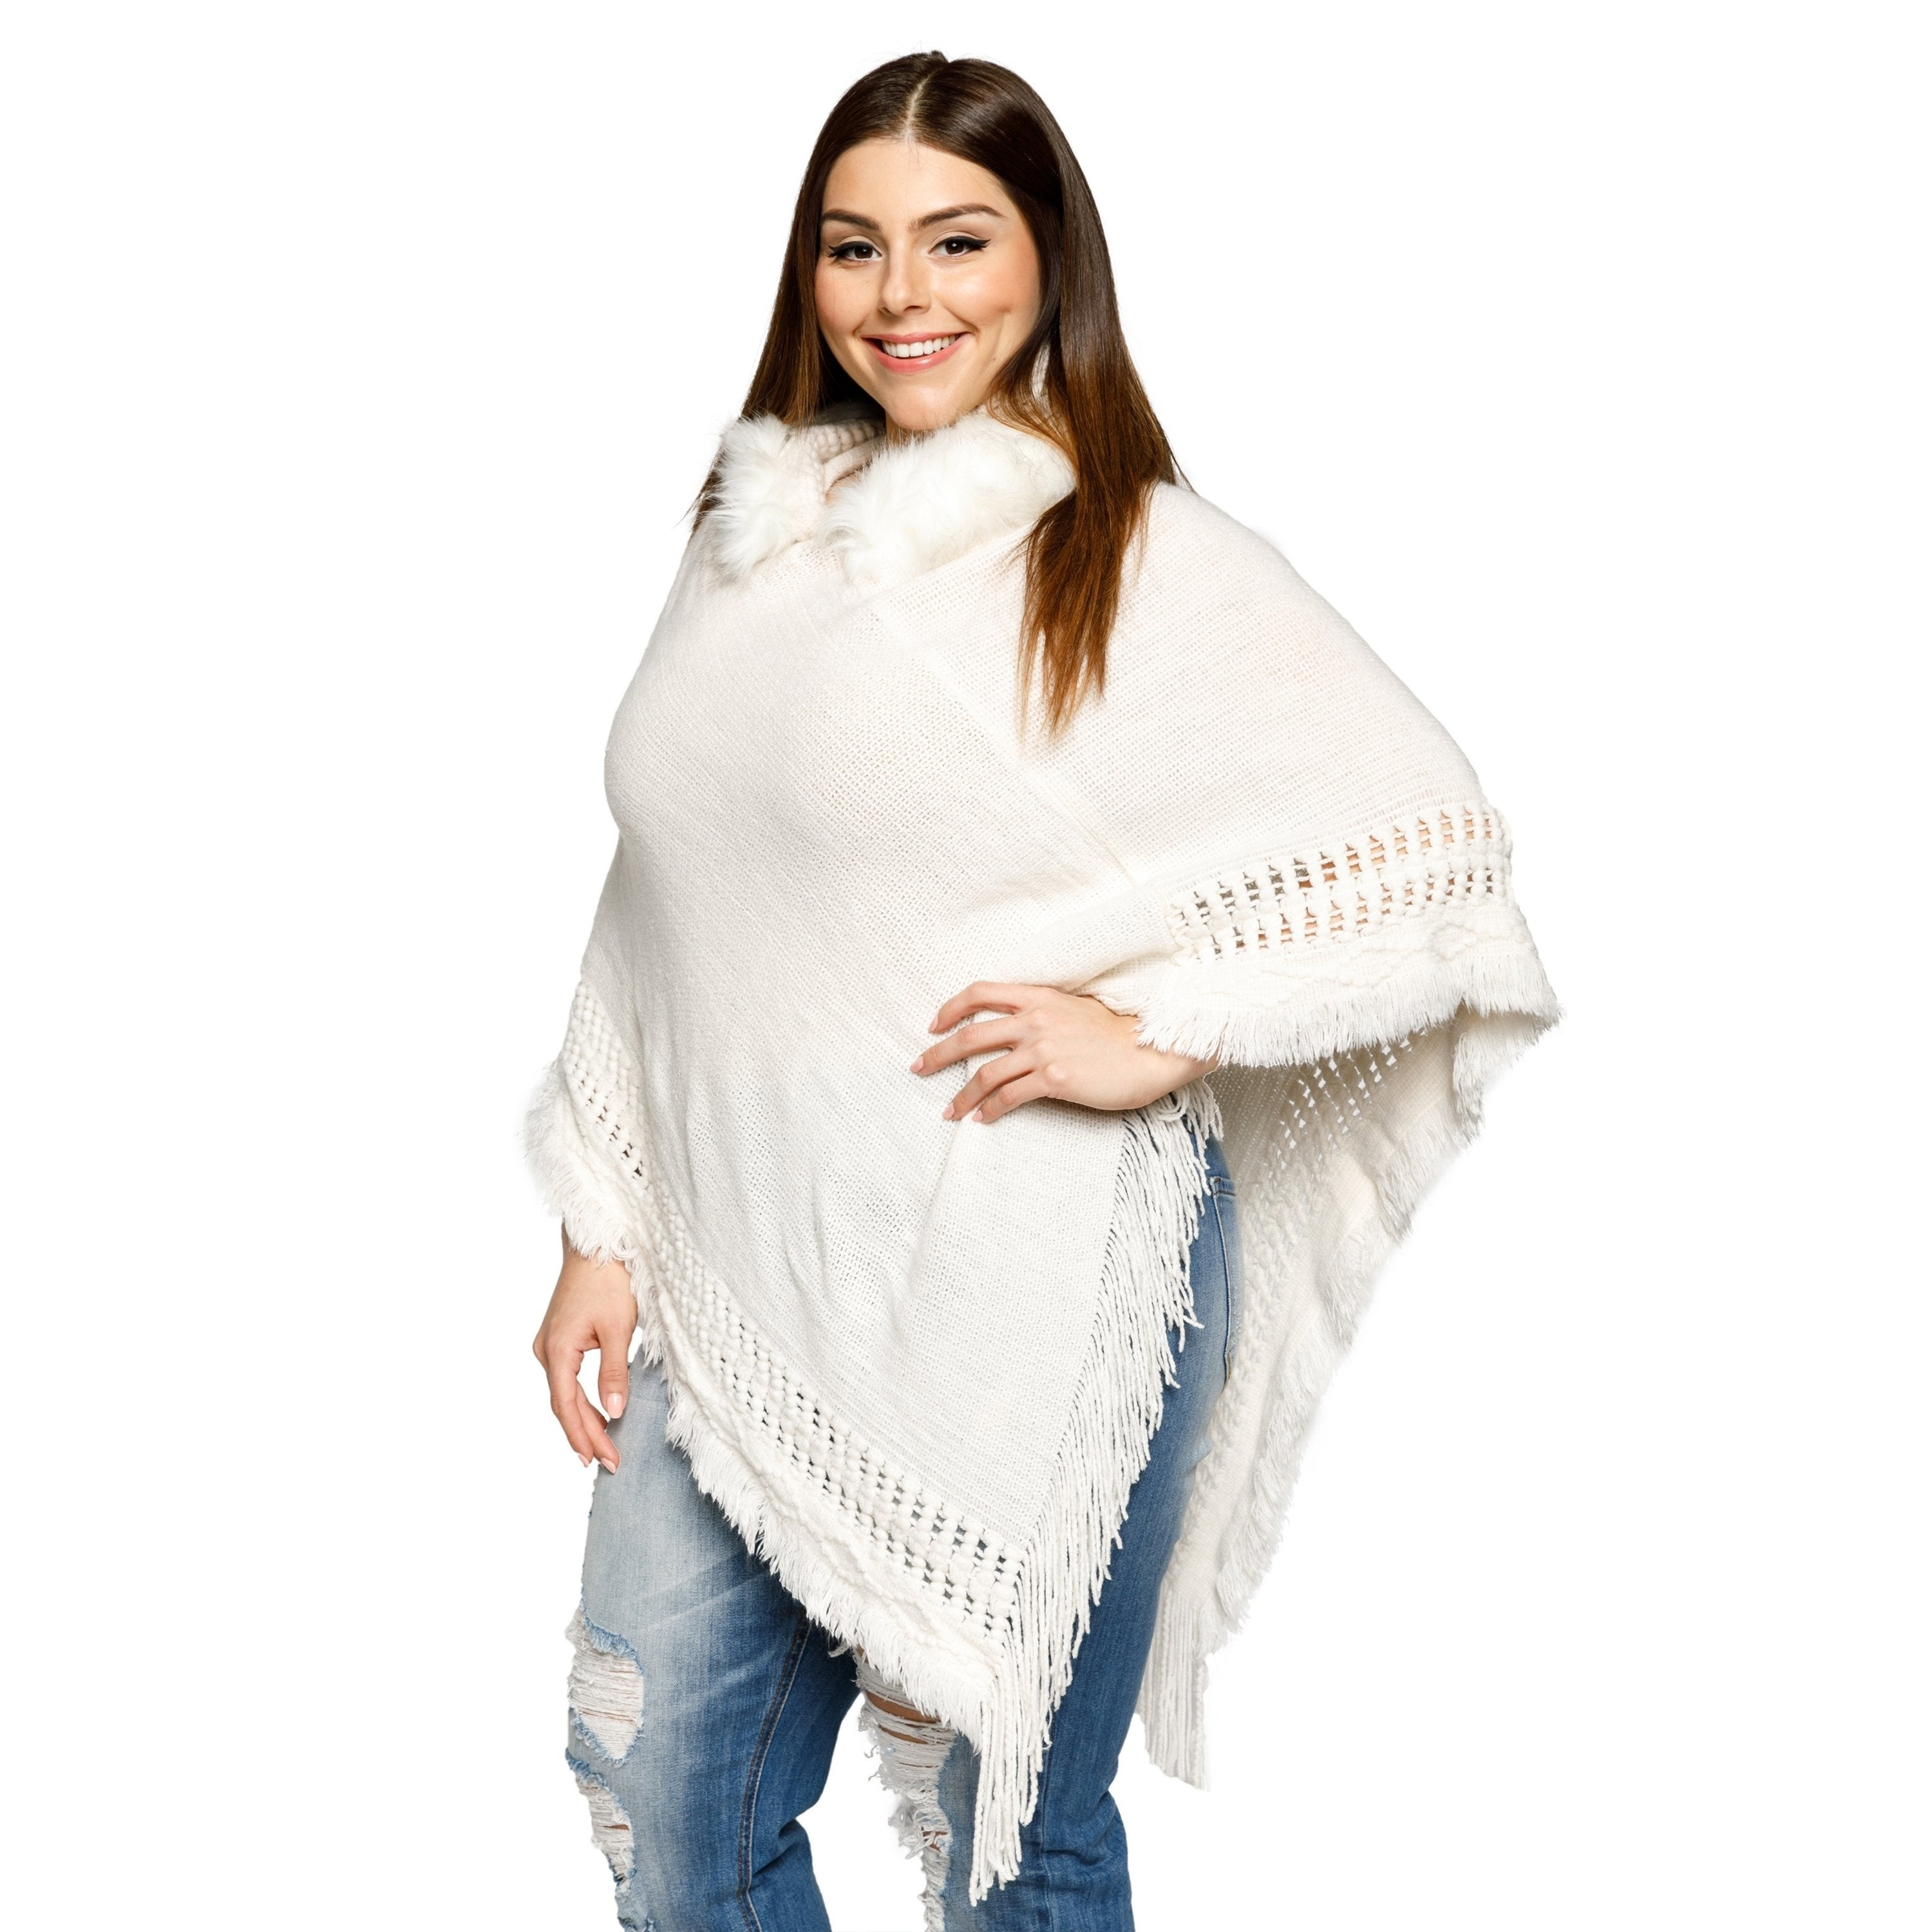 ad5fa421744a2 Shop Xehar Womens Plus Size Fringe Faux Fur Trim Hoodie Poncho Sweater -  Free Shipping On Orders Over  45 - Overstock - 18529822